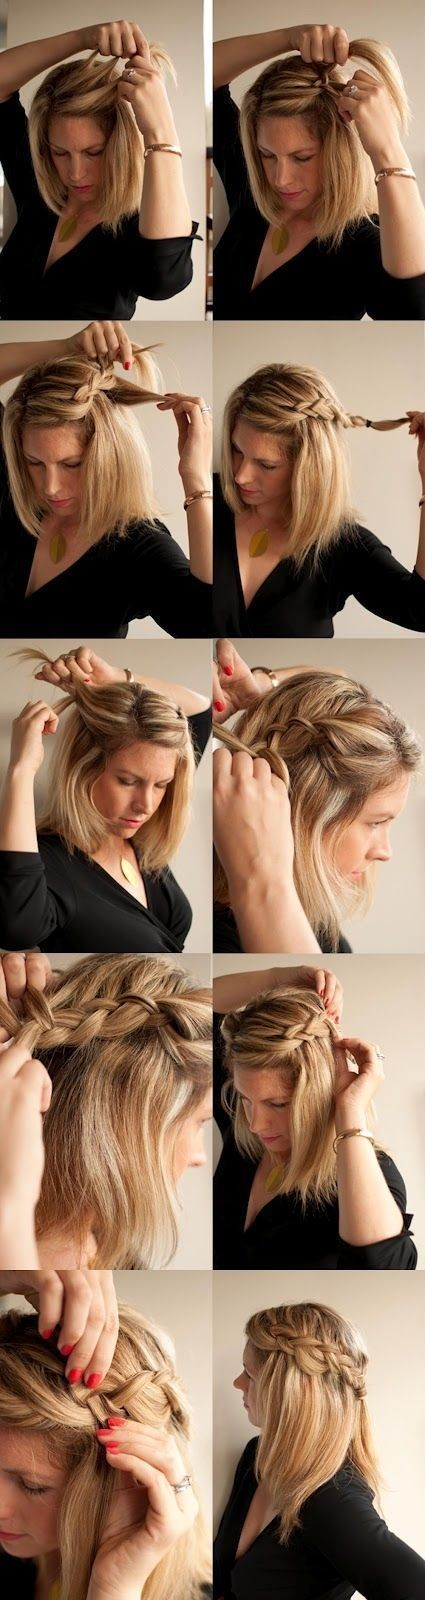 Braids with a side part